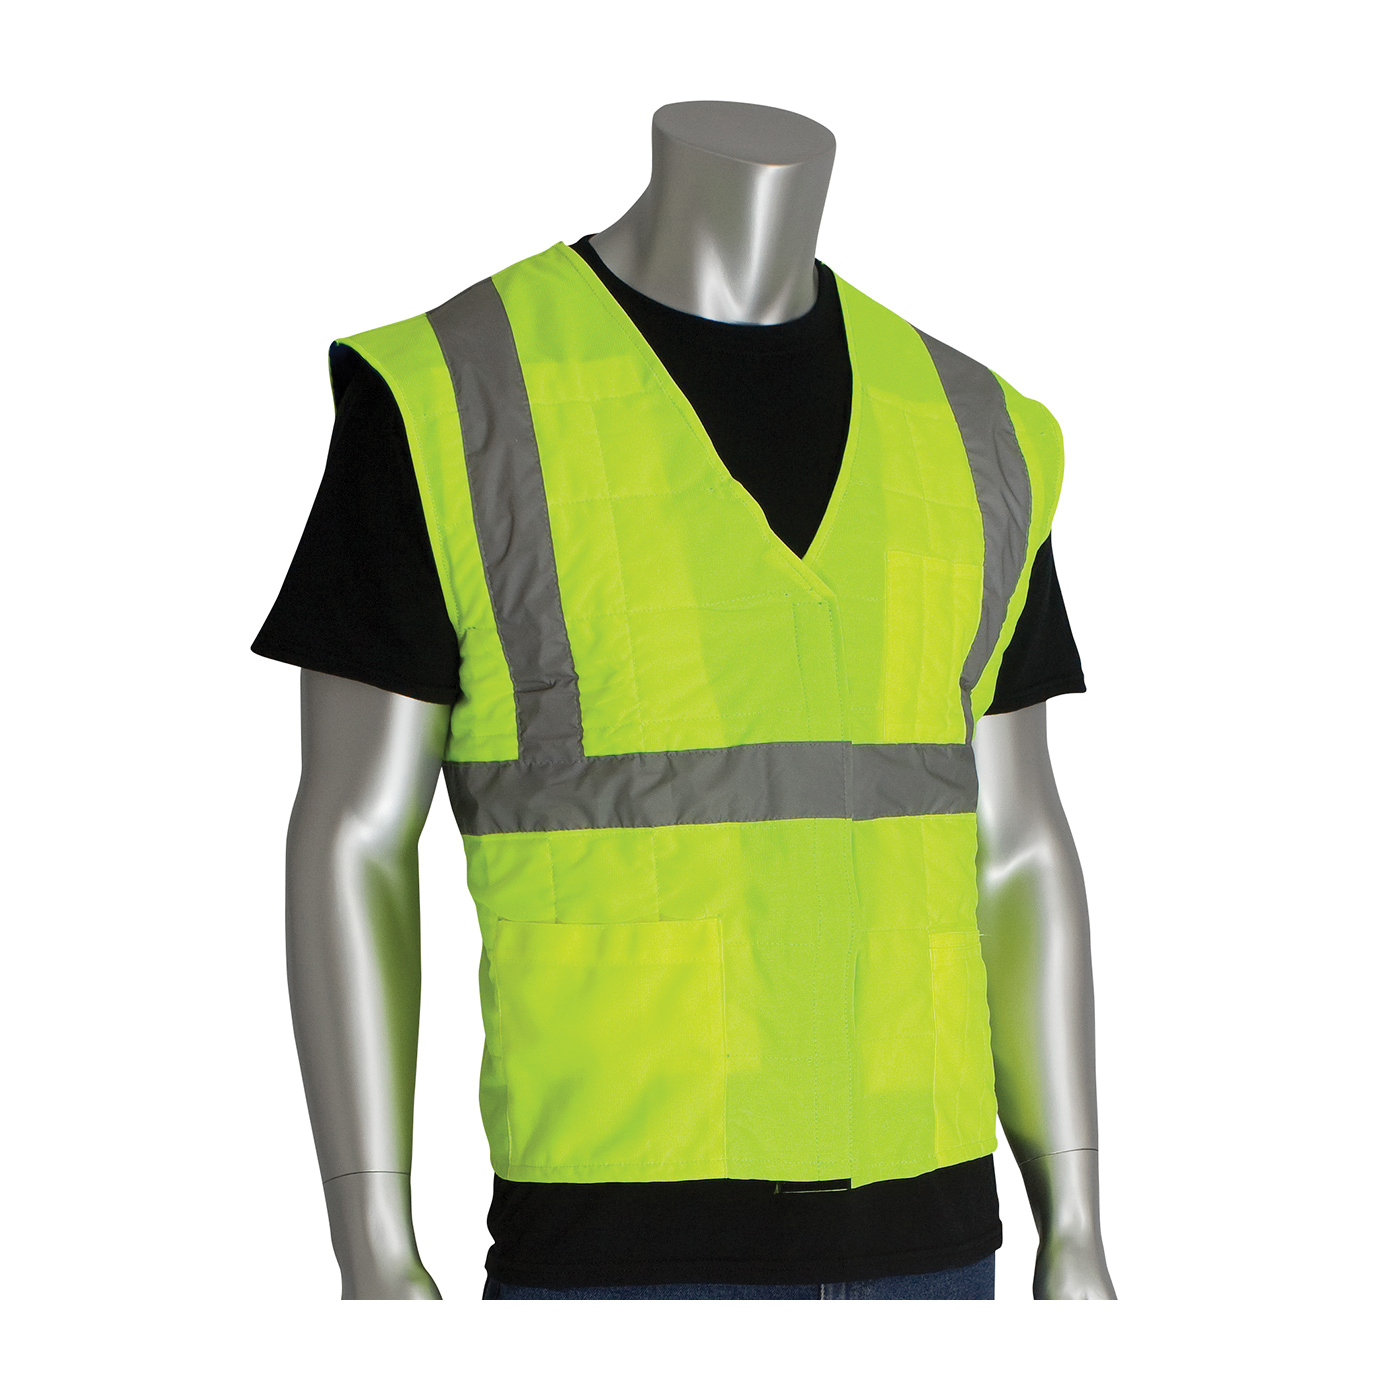 PIP® 390-EZ202-Y2/3X EZ-Cool®, 2XL/3XL, Hi-Viz Yellow, Polyester/Nylon, Soak In Cold Water Cooling, Hook and Loop/Zipper Closure